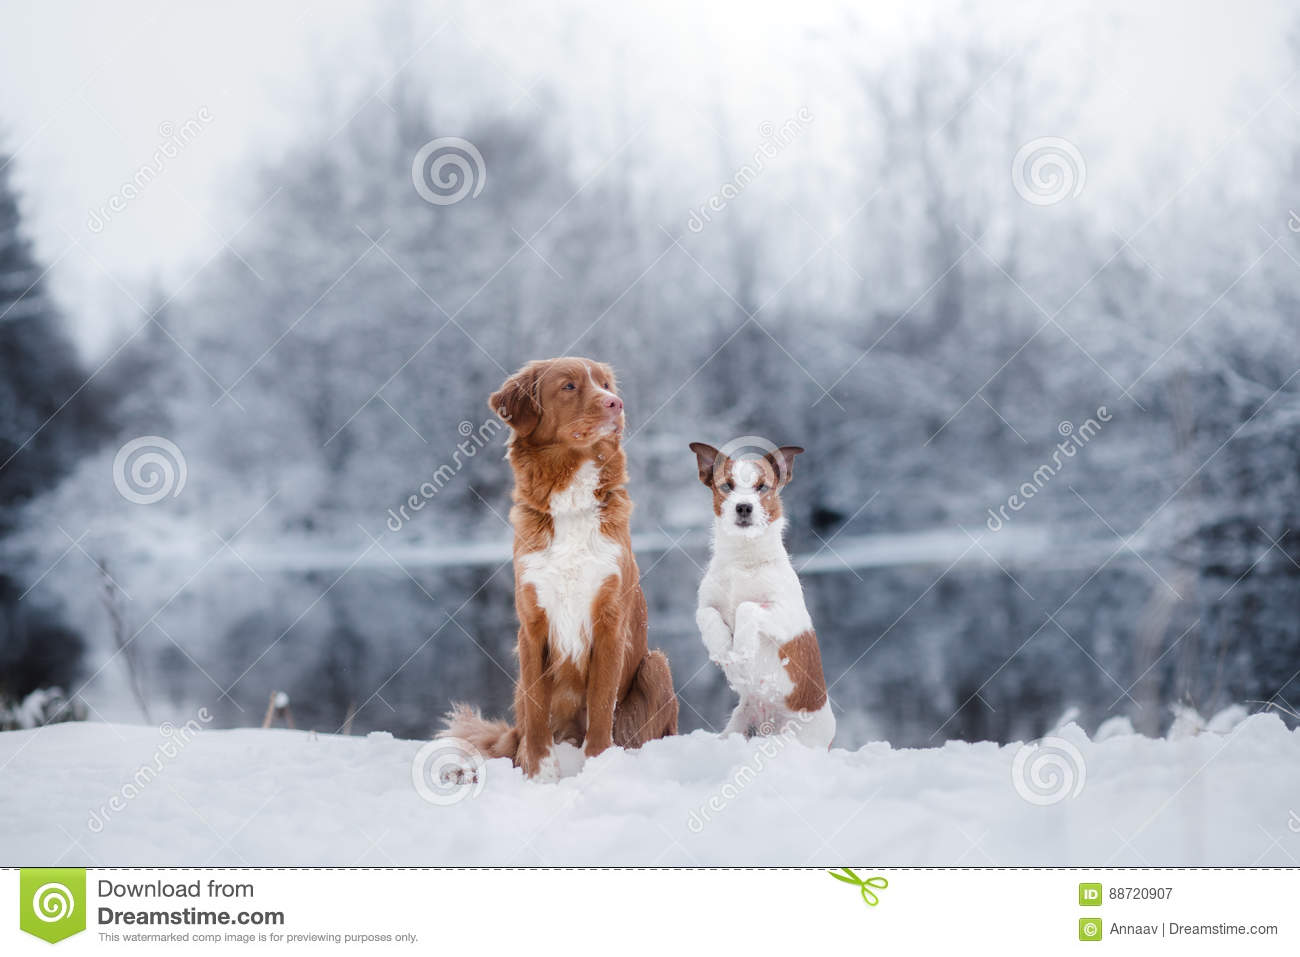 Dog Jack Russell Terrier and a Nova Scotia Duck Tolling Retriever outdoors